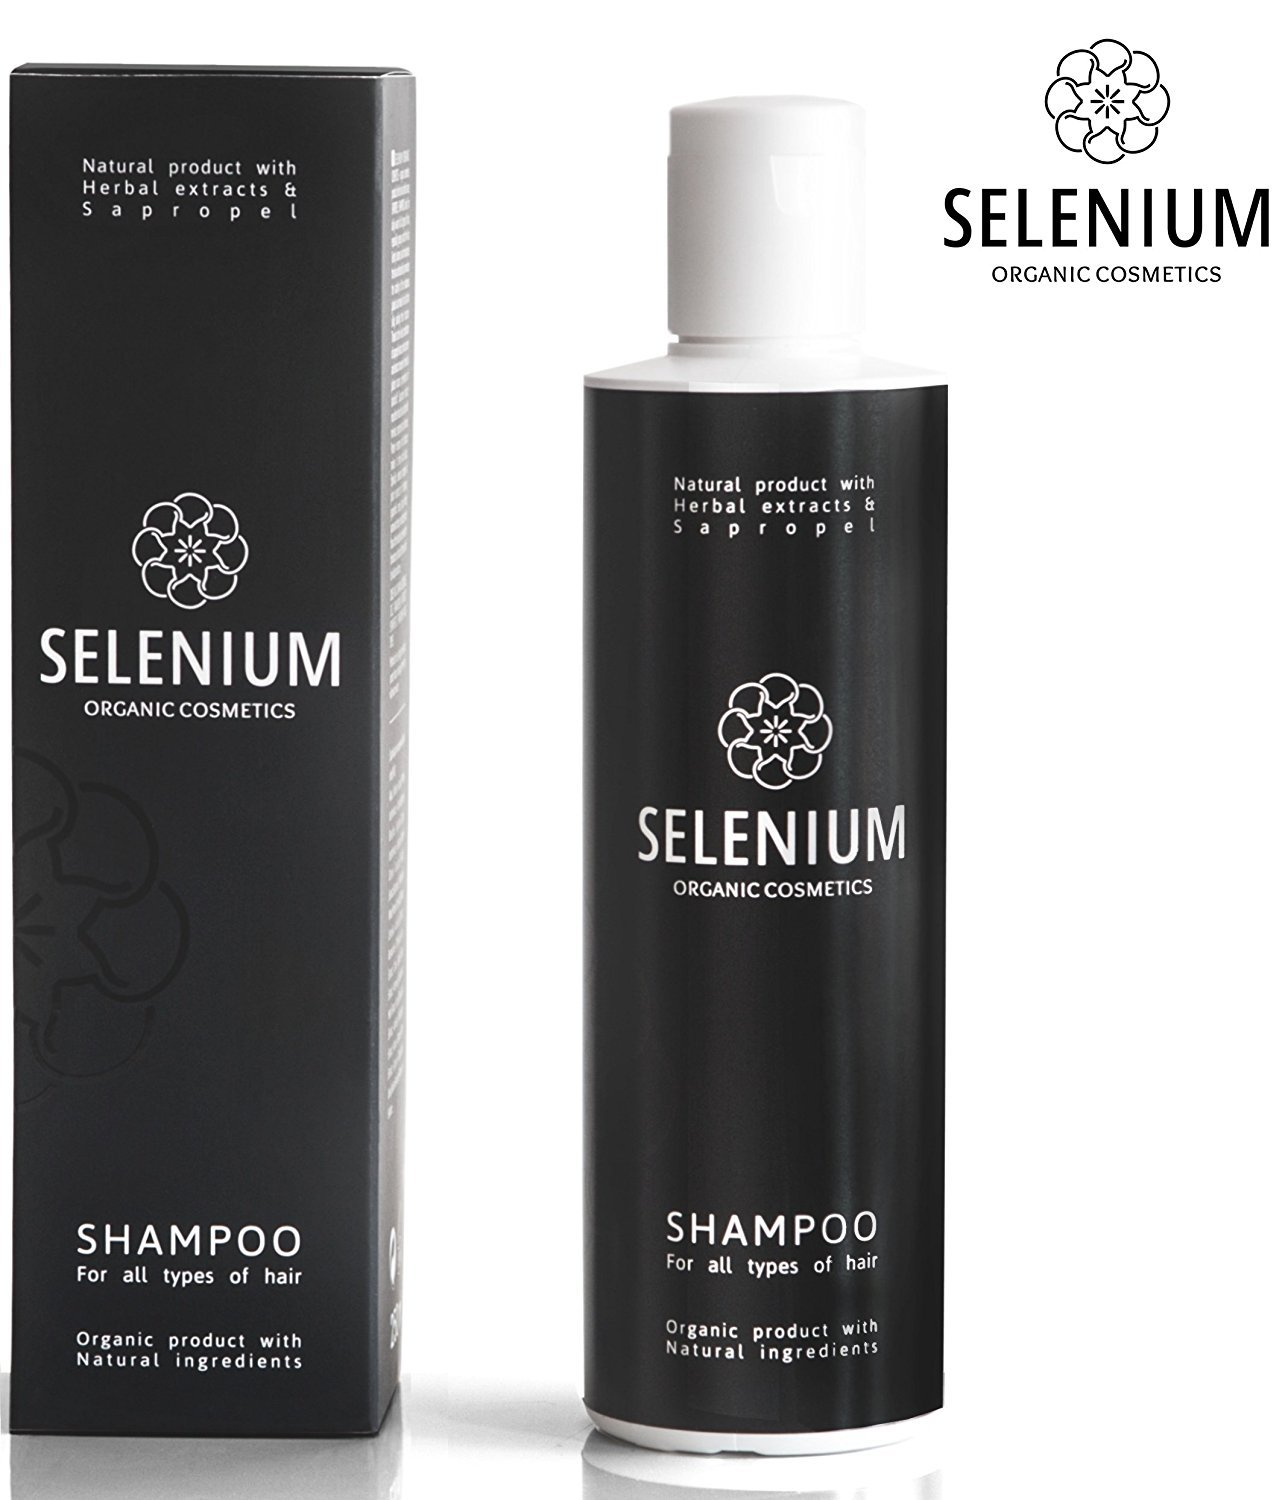 Shampoo by Selenium - Natural Organic shampoo with a Minerals Protein Vitamin Enzymes Herbal & Sapropel Extract Shampoo Anti Dandruff Soft Dry Itchy Scalp Psoriasis and Damaged Hair / 8,5oz